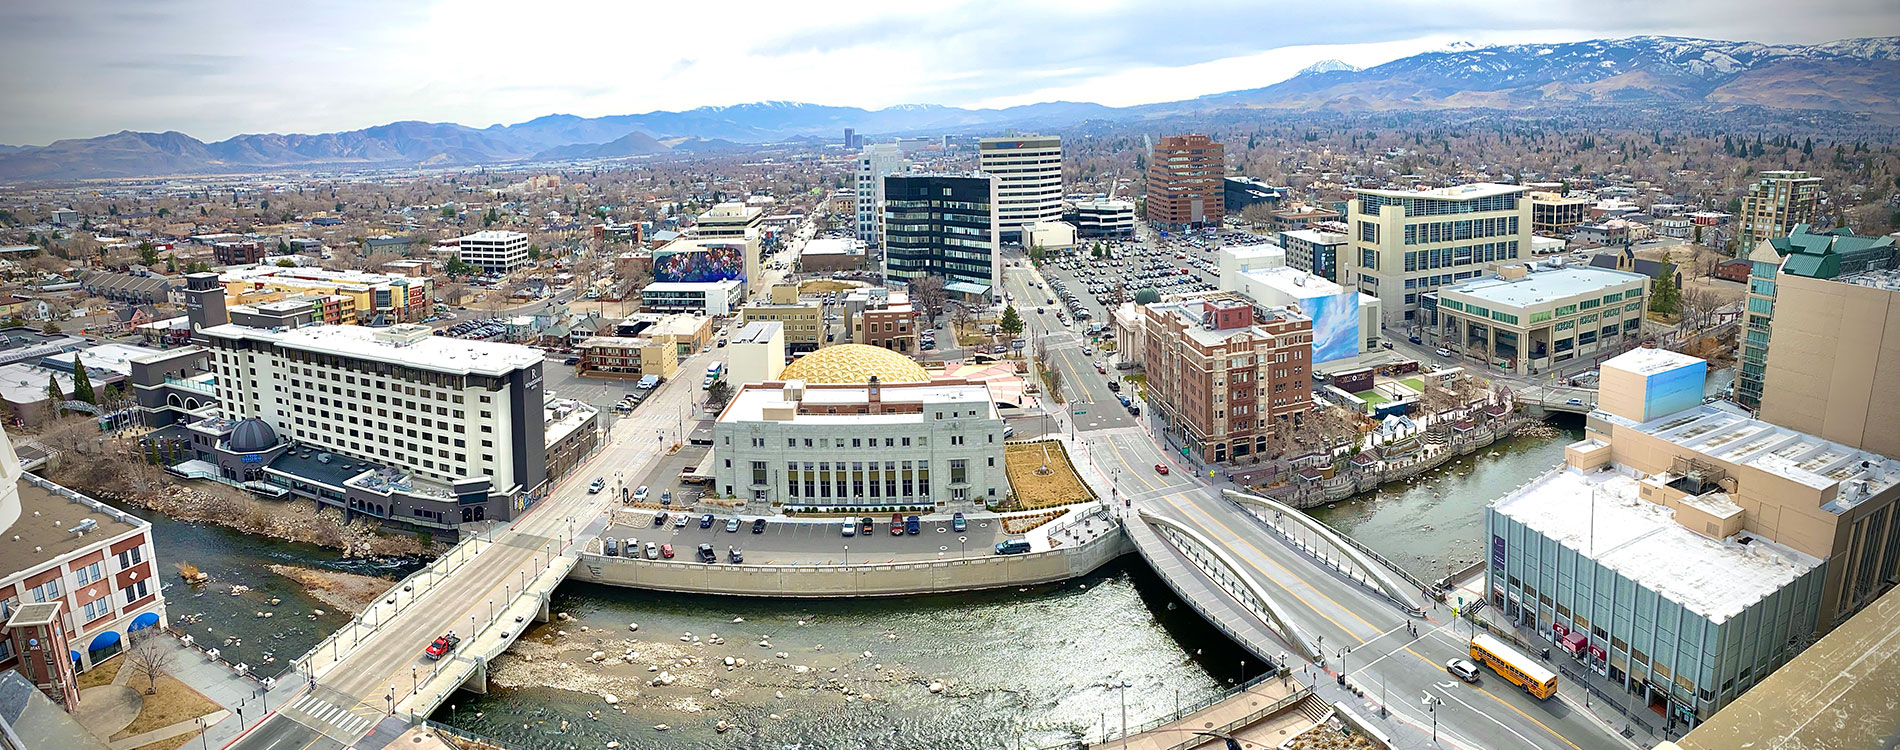 Overview of City of Reno from roof of City Hall building